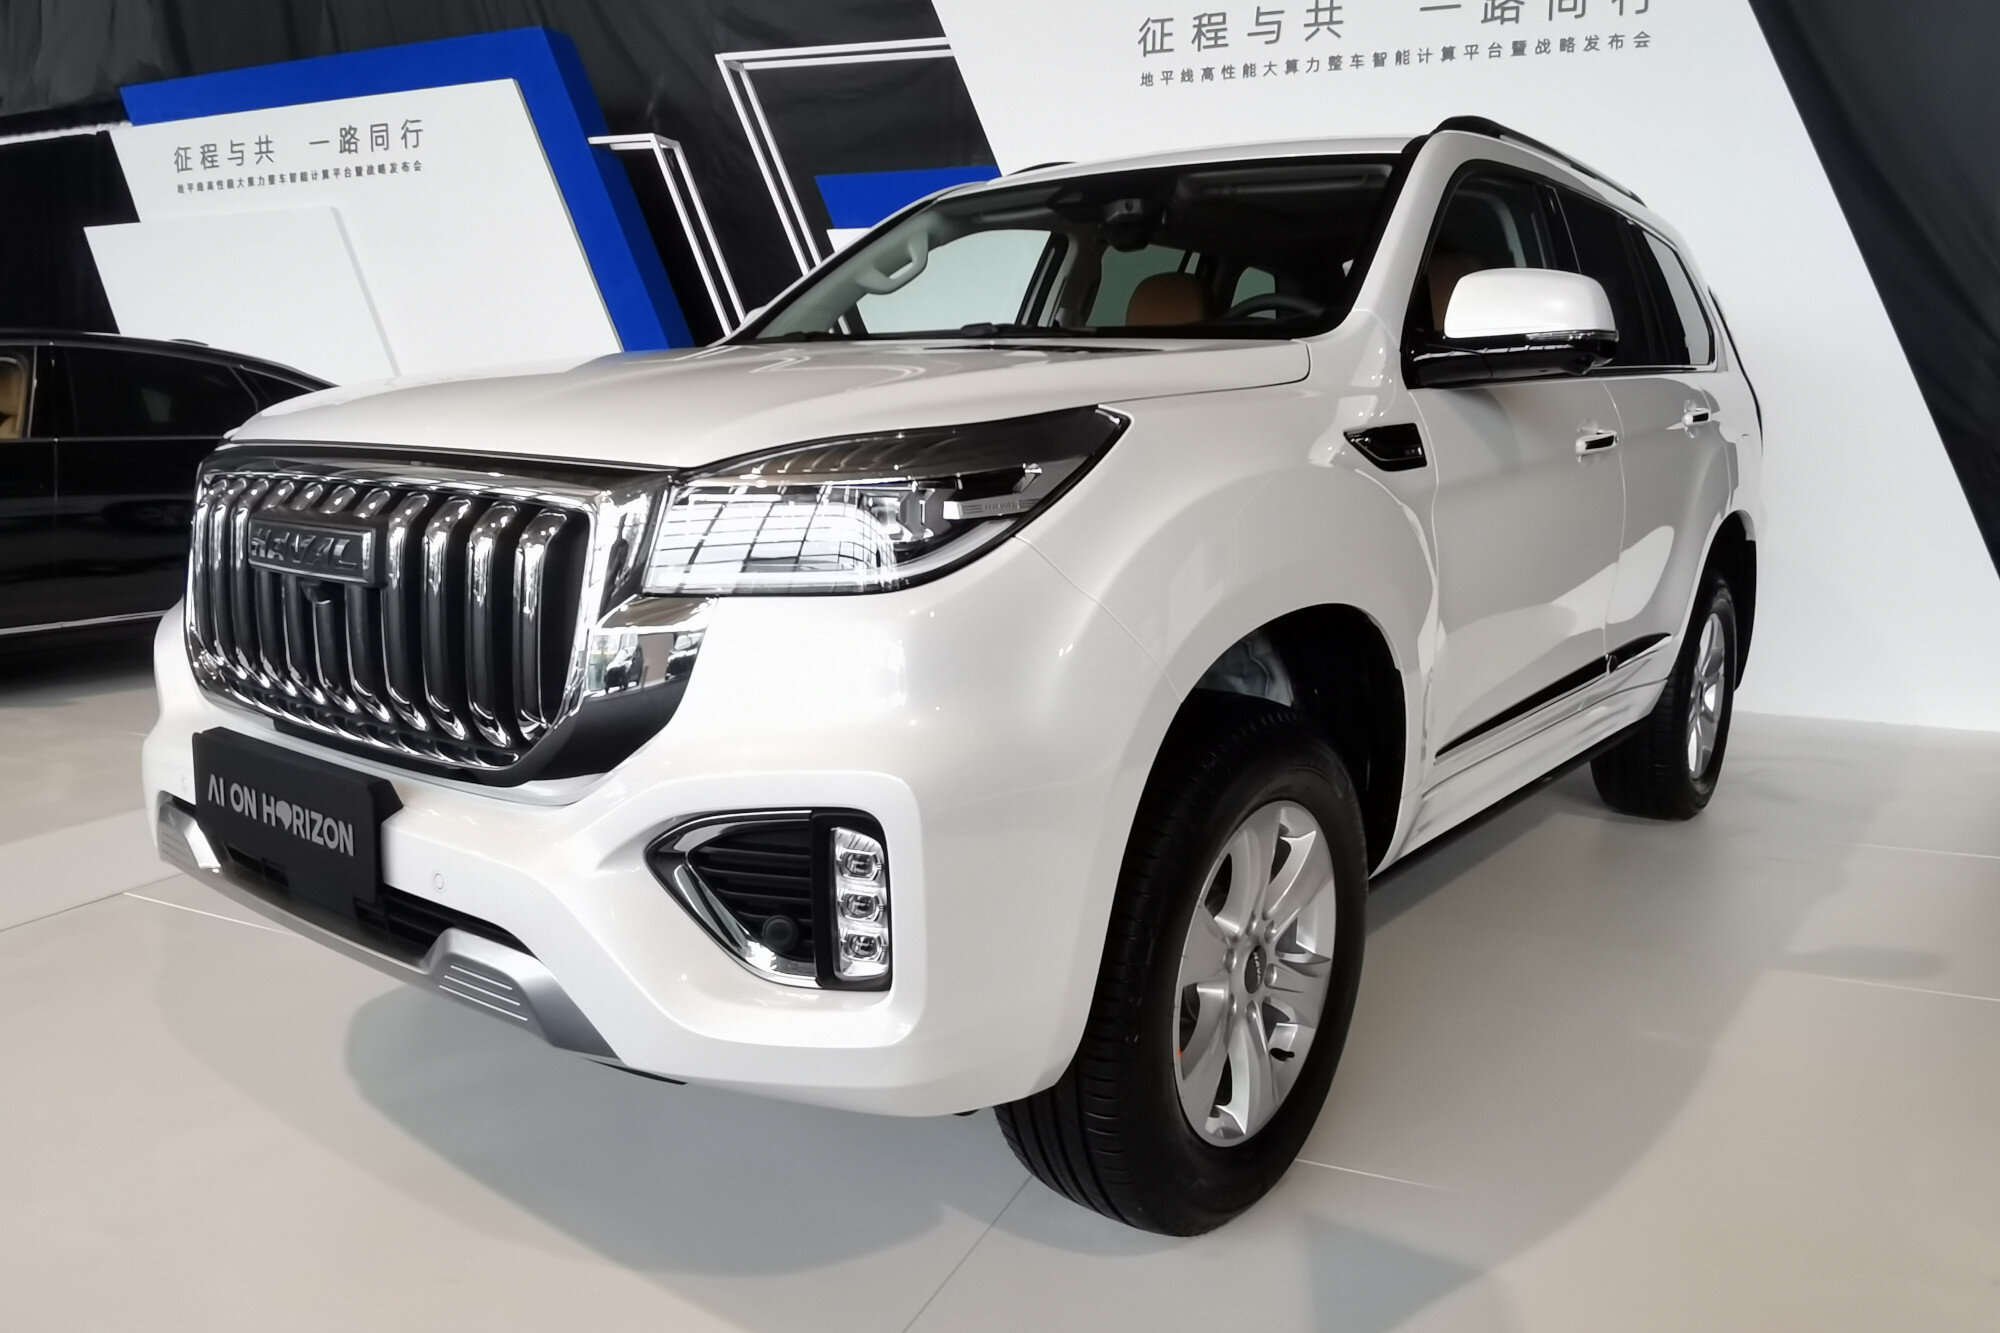 Mere days after the appearance of the first photos of the Haval H9 facelift online, the carmaker dispensed with the mystery and revealed the SUV in its full glory.